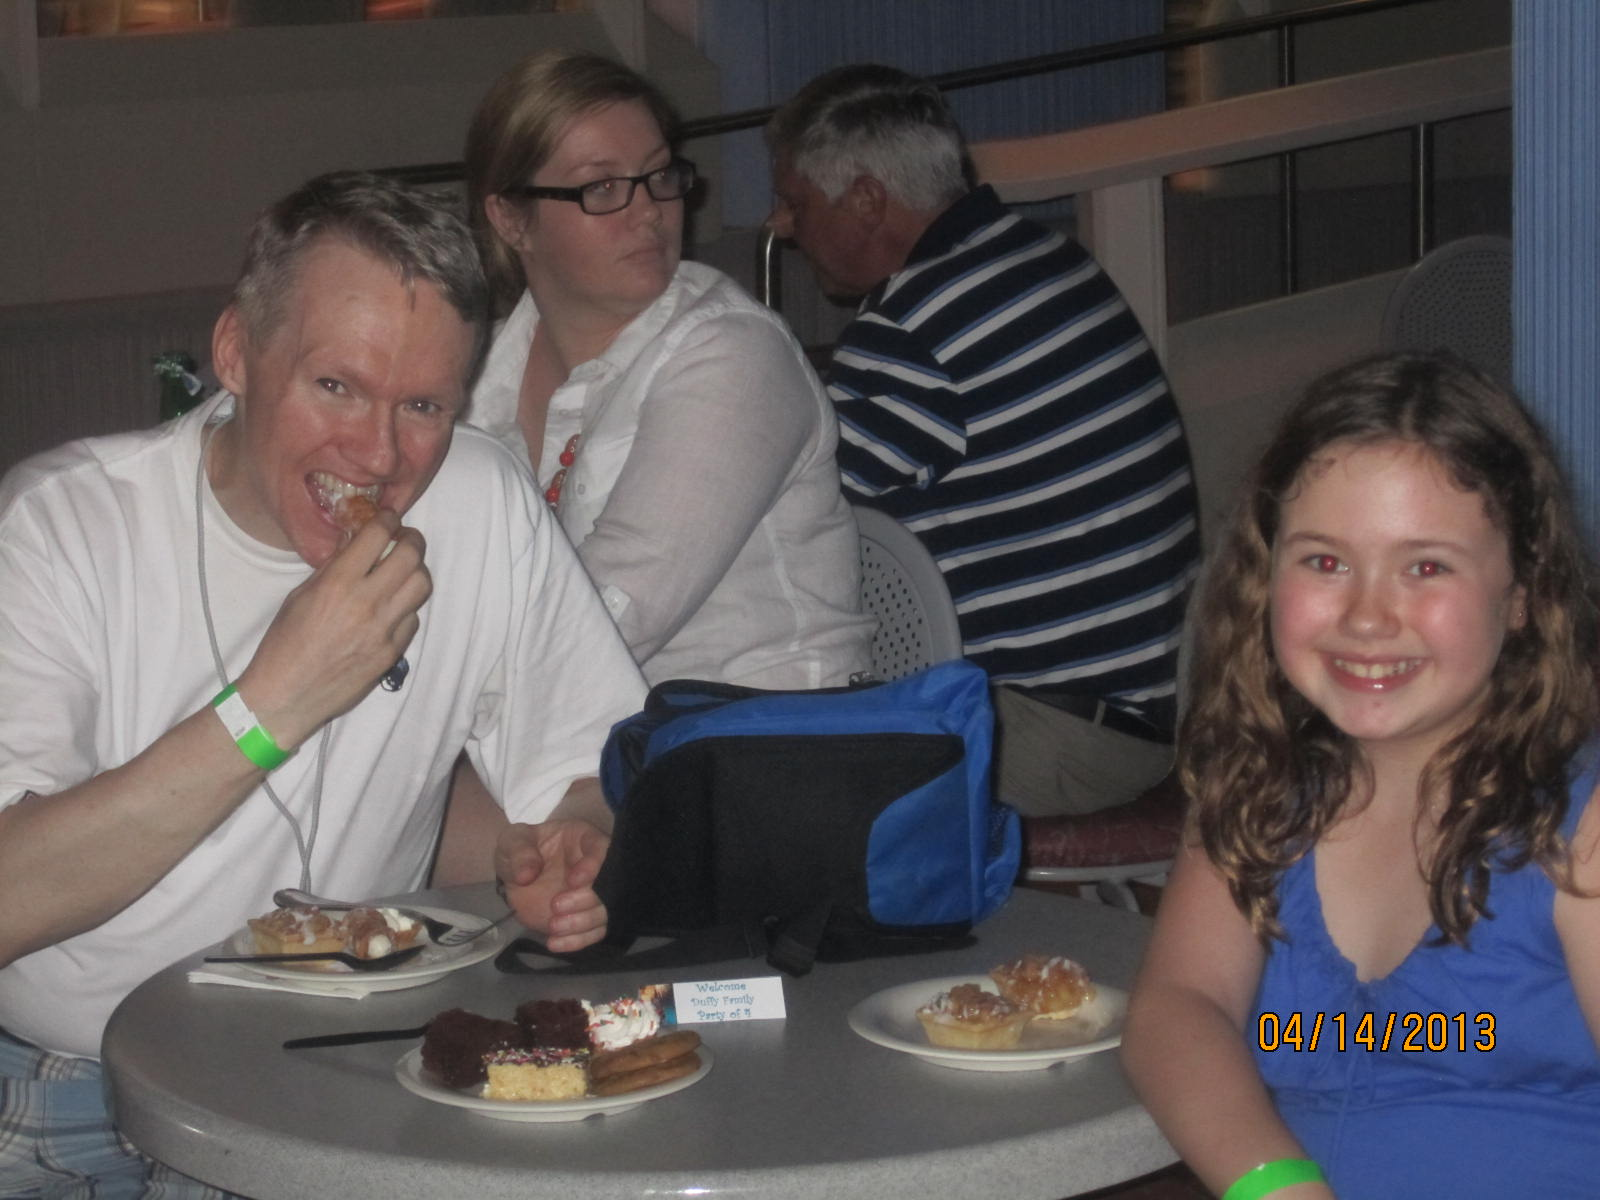 Get a fantastic view of 'Wishes' from the Tomorrowland Terrace Dessert Party in the Magic Kingdom |PassPorter.com